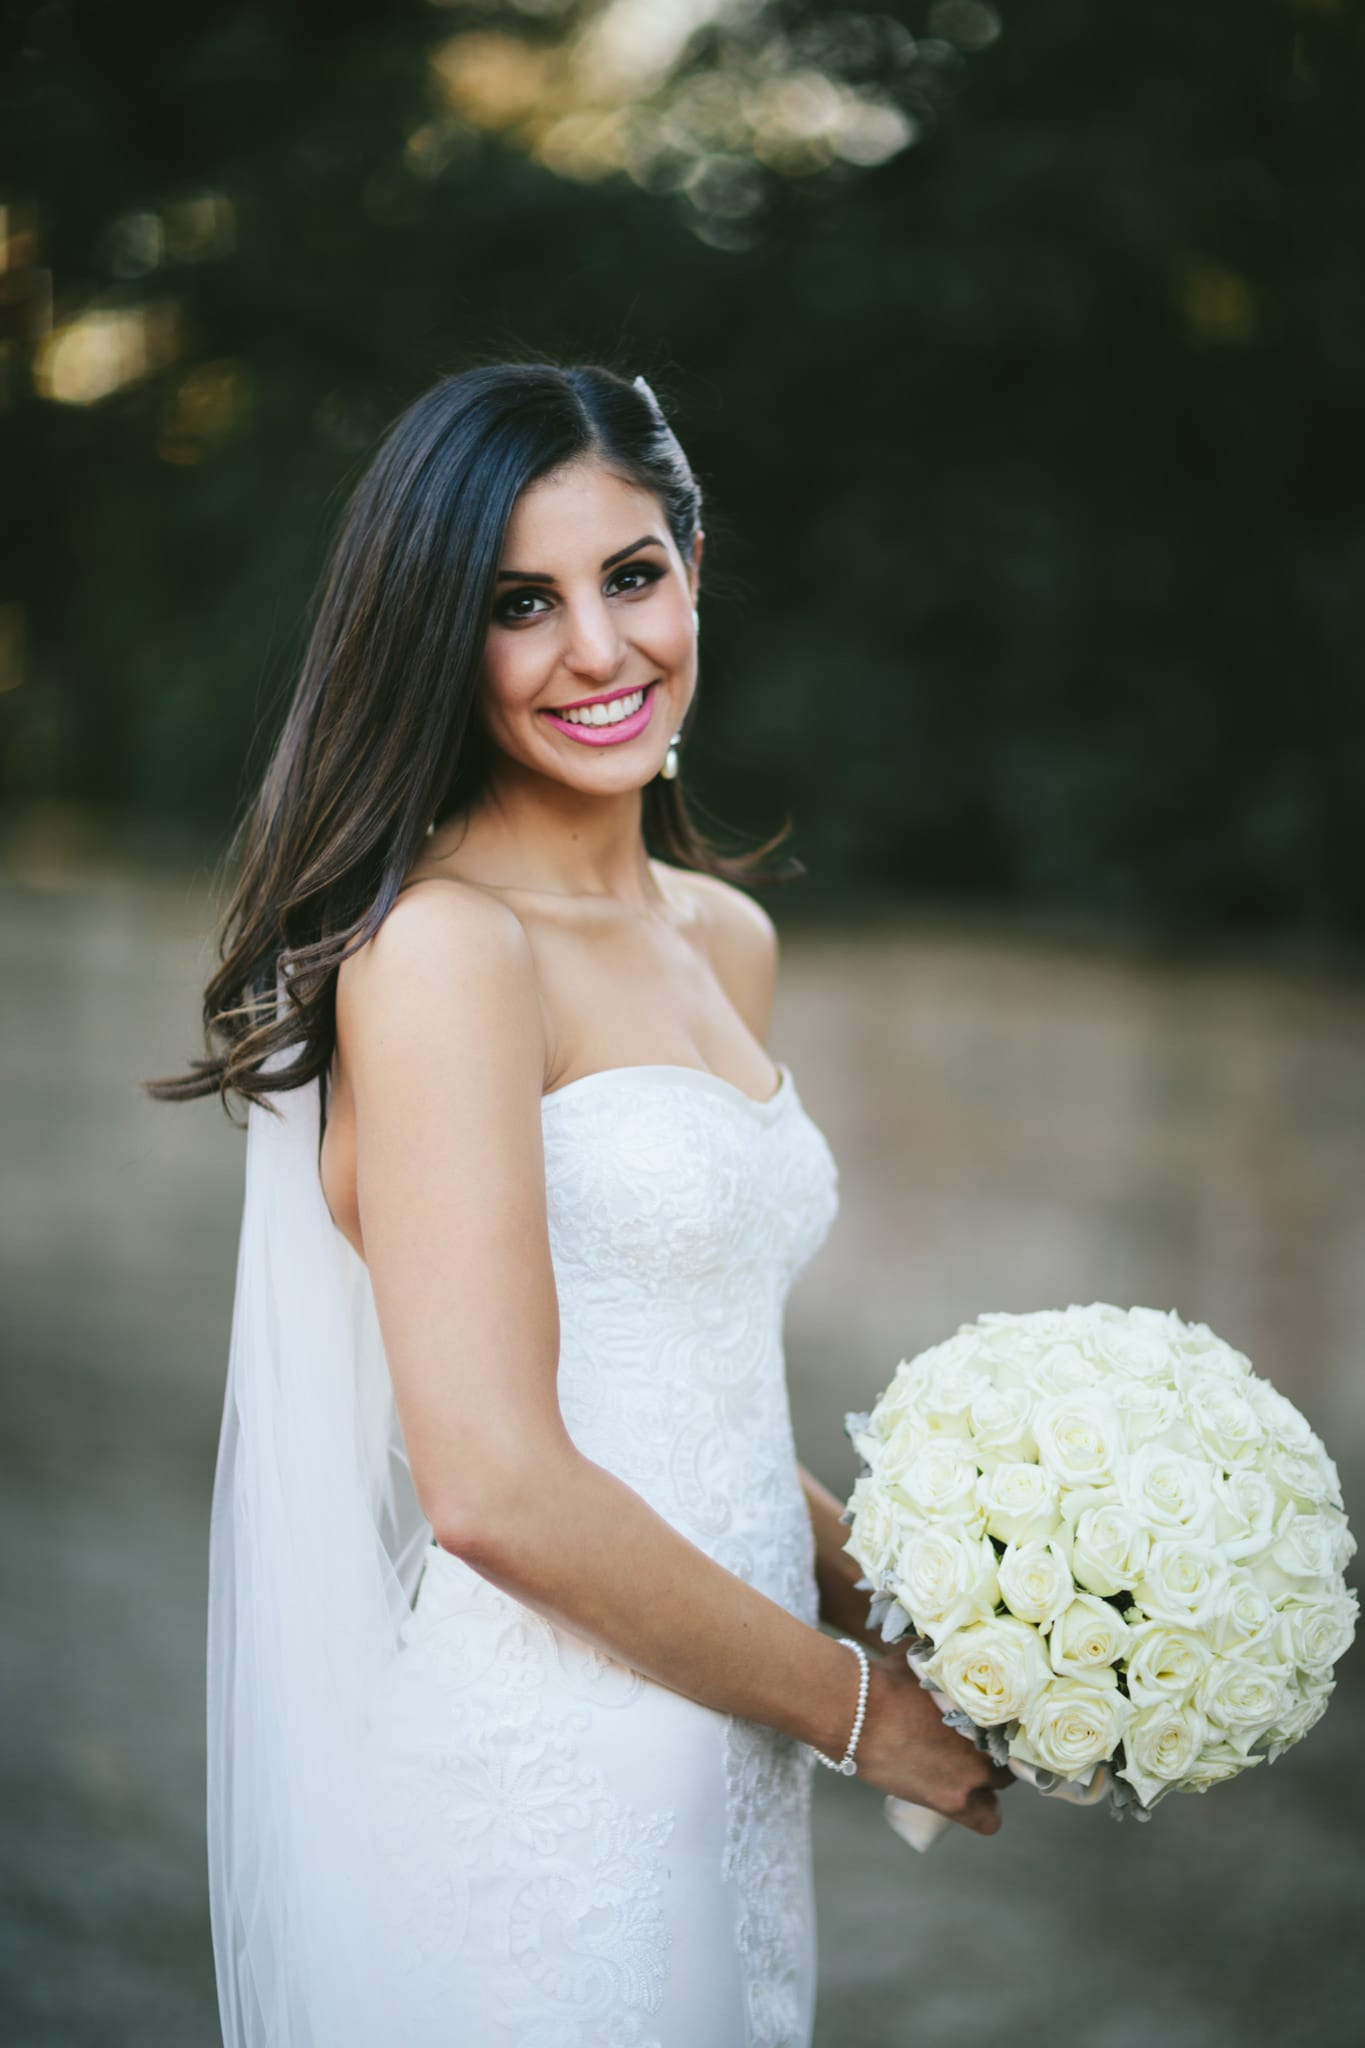 beautiful bride - best wedding photos melbourne